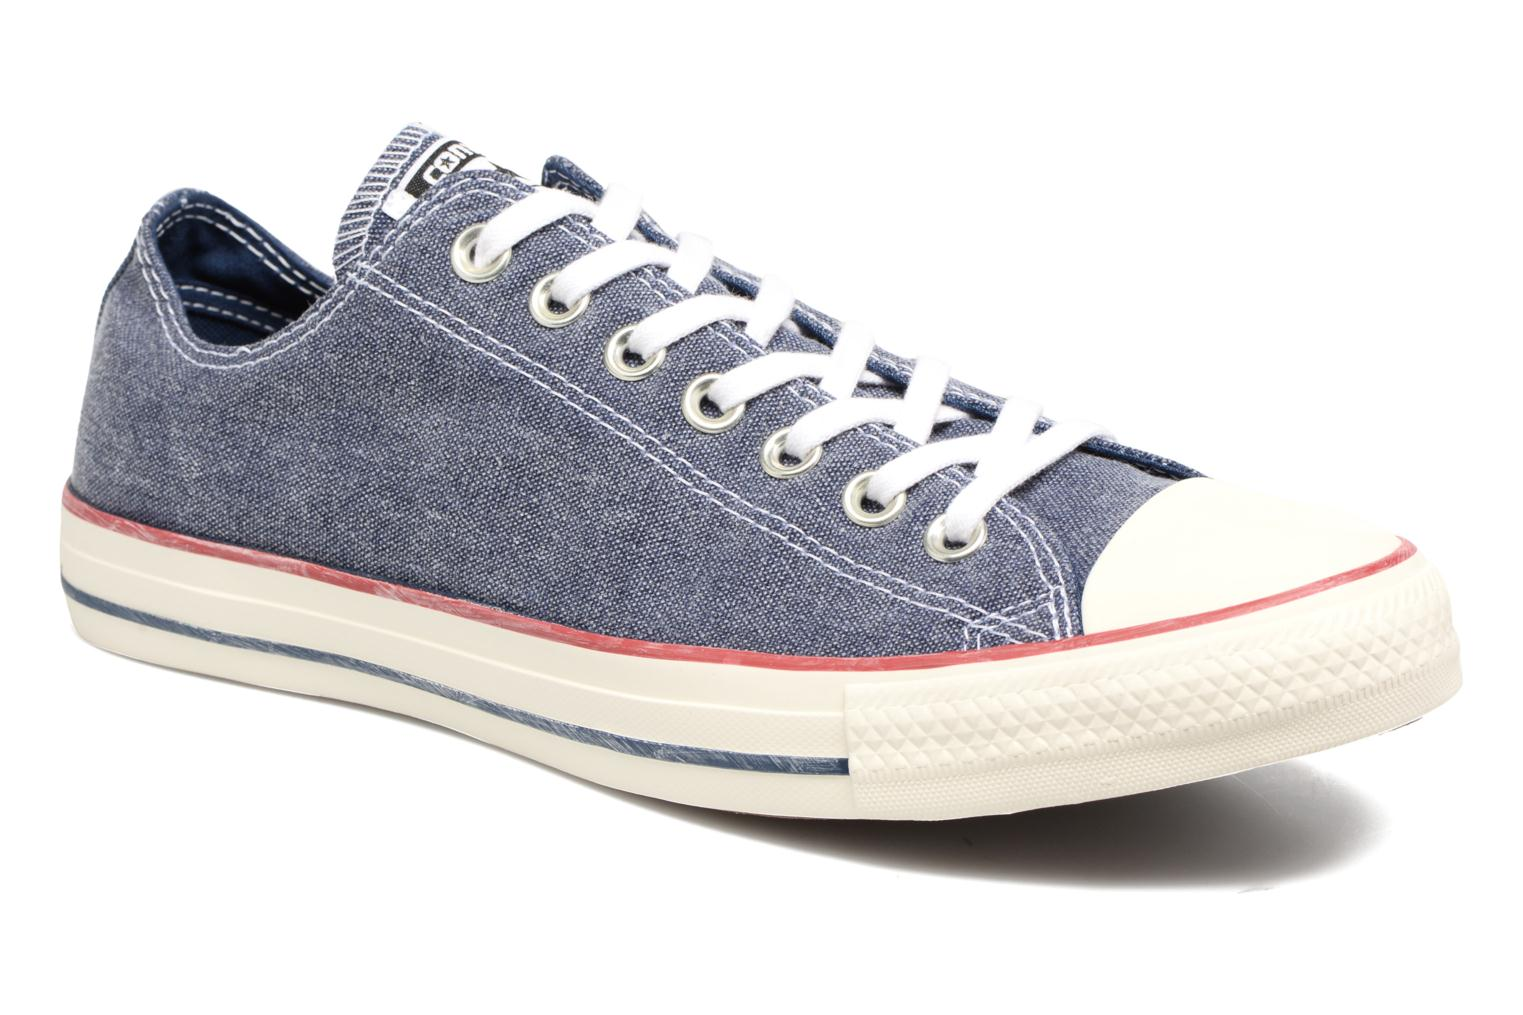 Converse Chuck Taylor All Star Wash Ox- Baskets mode femme - Bleu, 39 EU (6 UK)